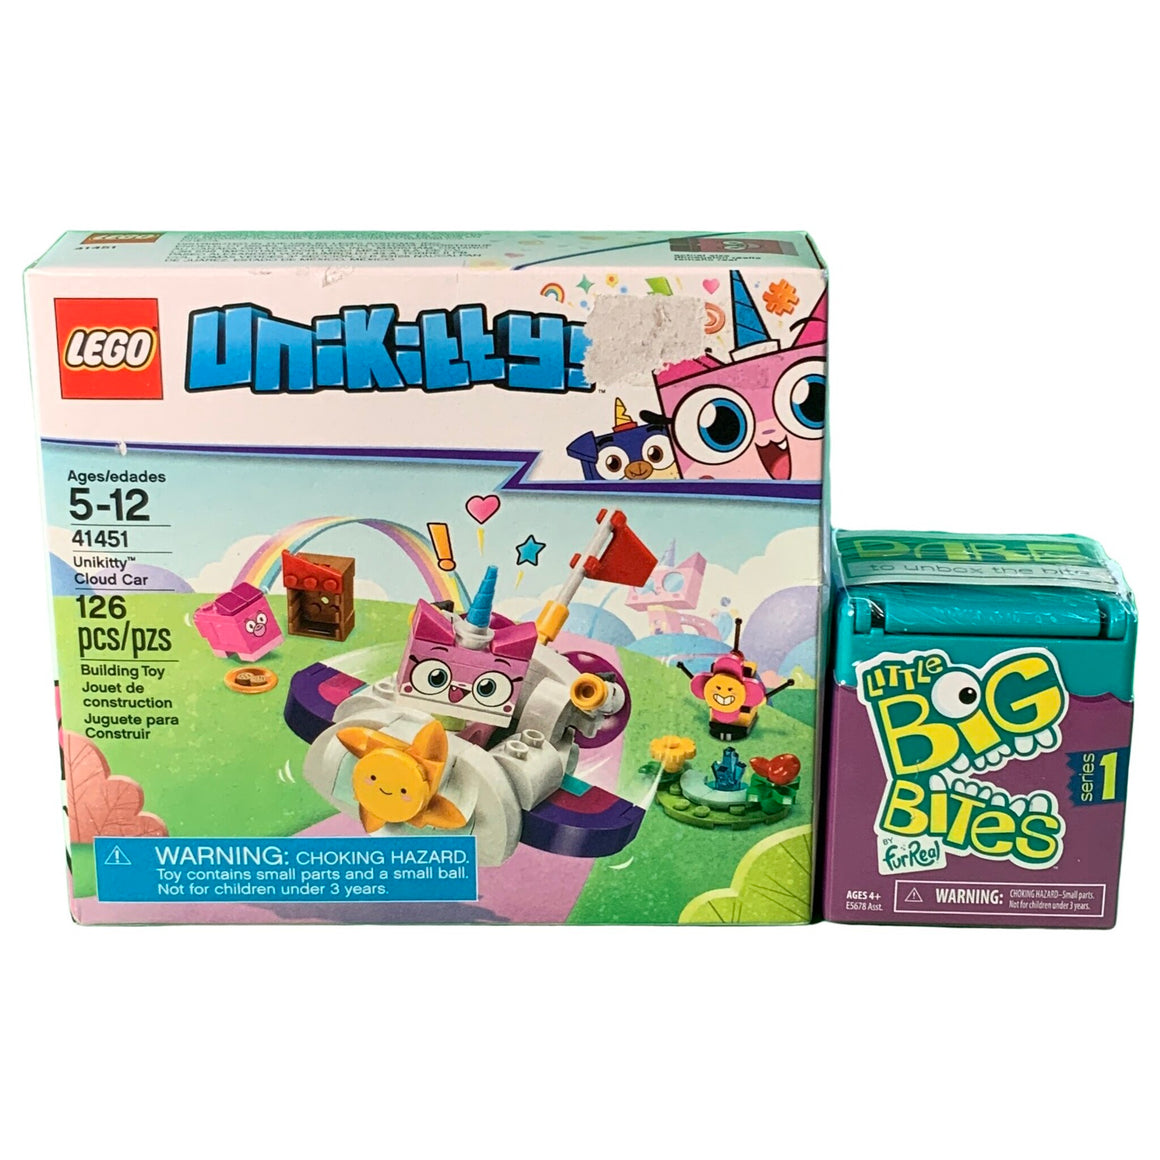 Little Big Bites, 12 To Collect, Series 1 & Unikitty Unikitty Cloud Car  - Furreal & Lego